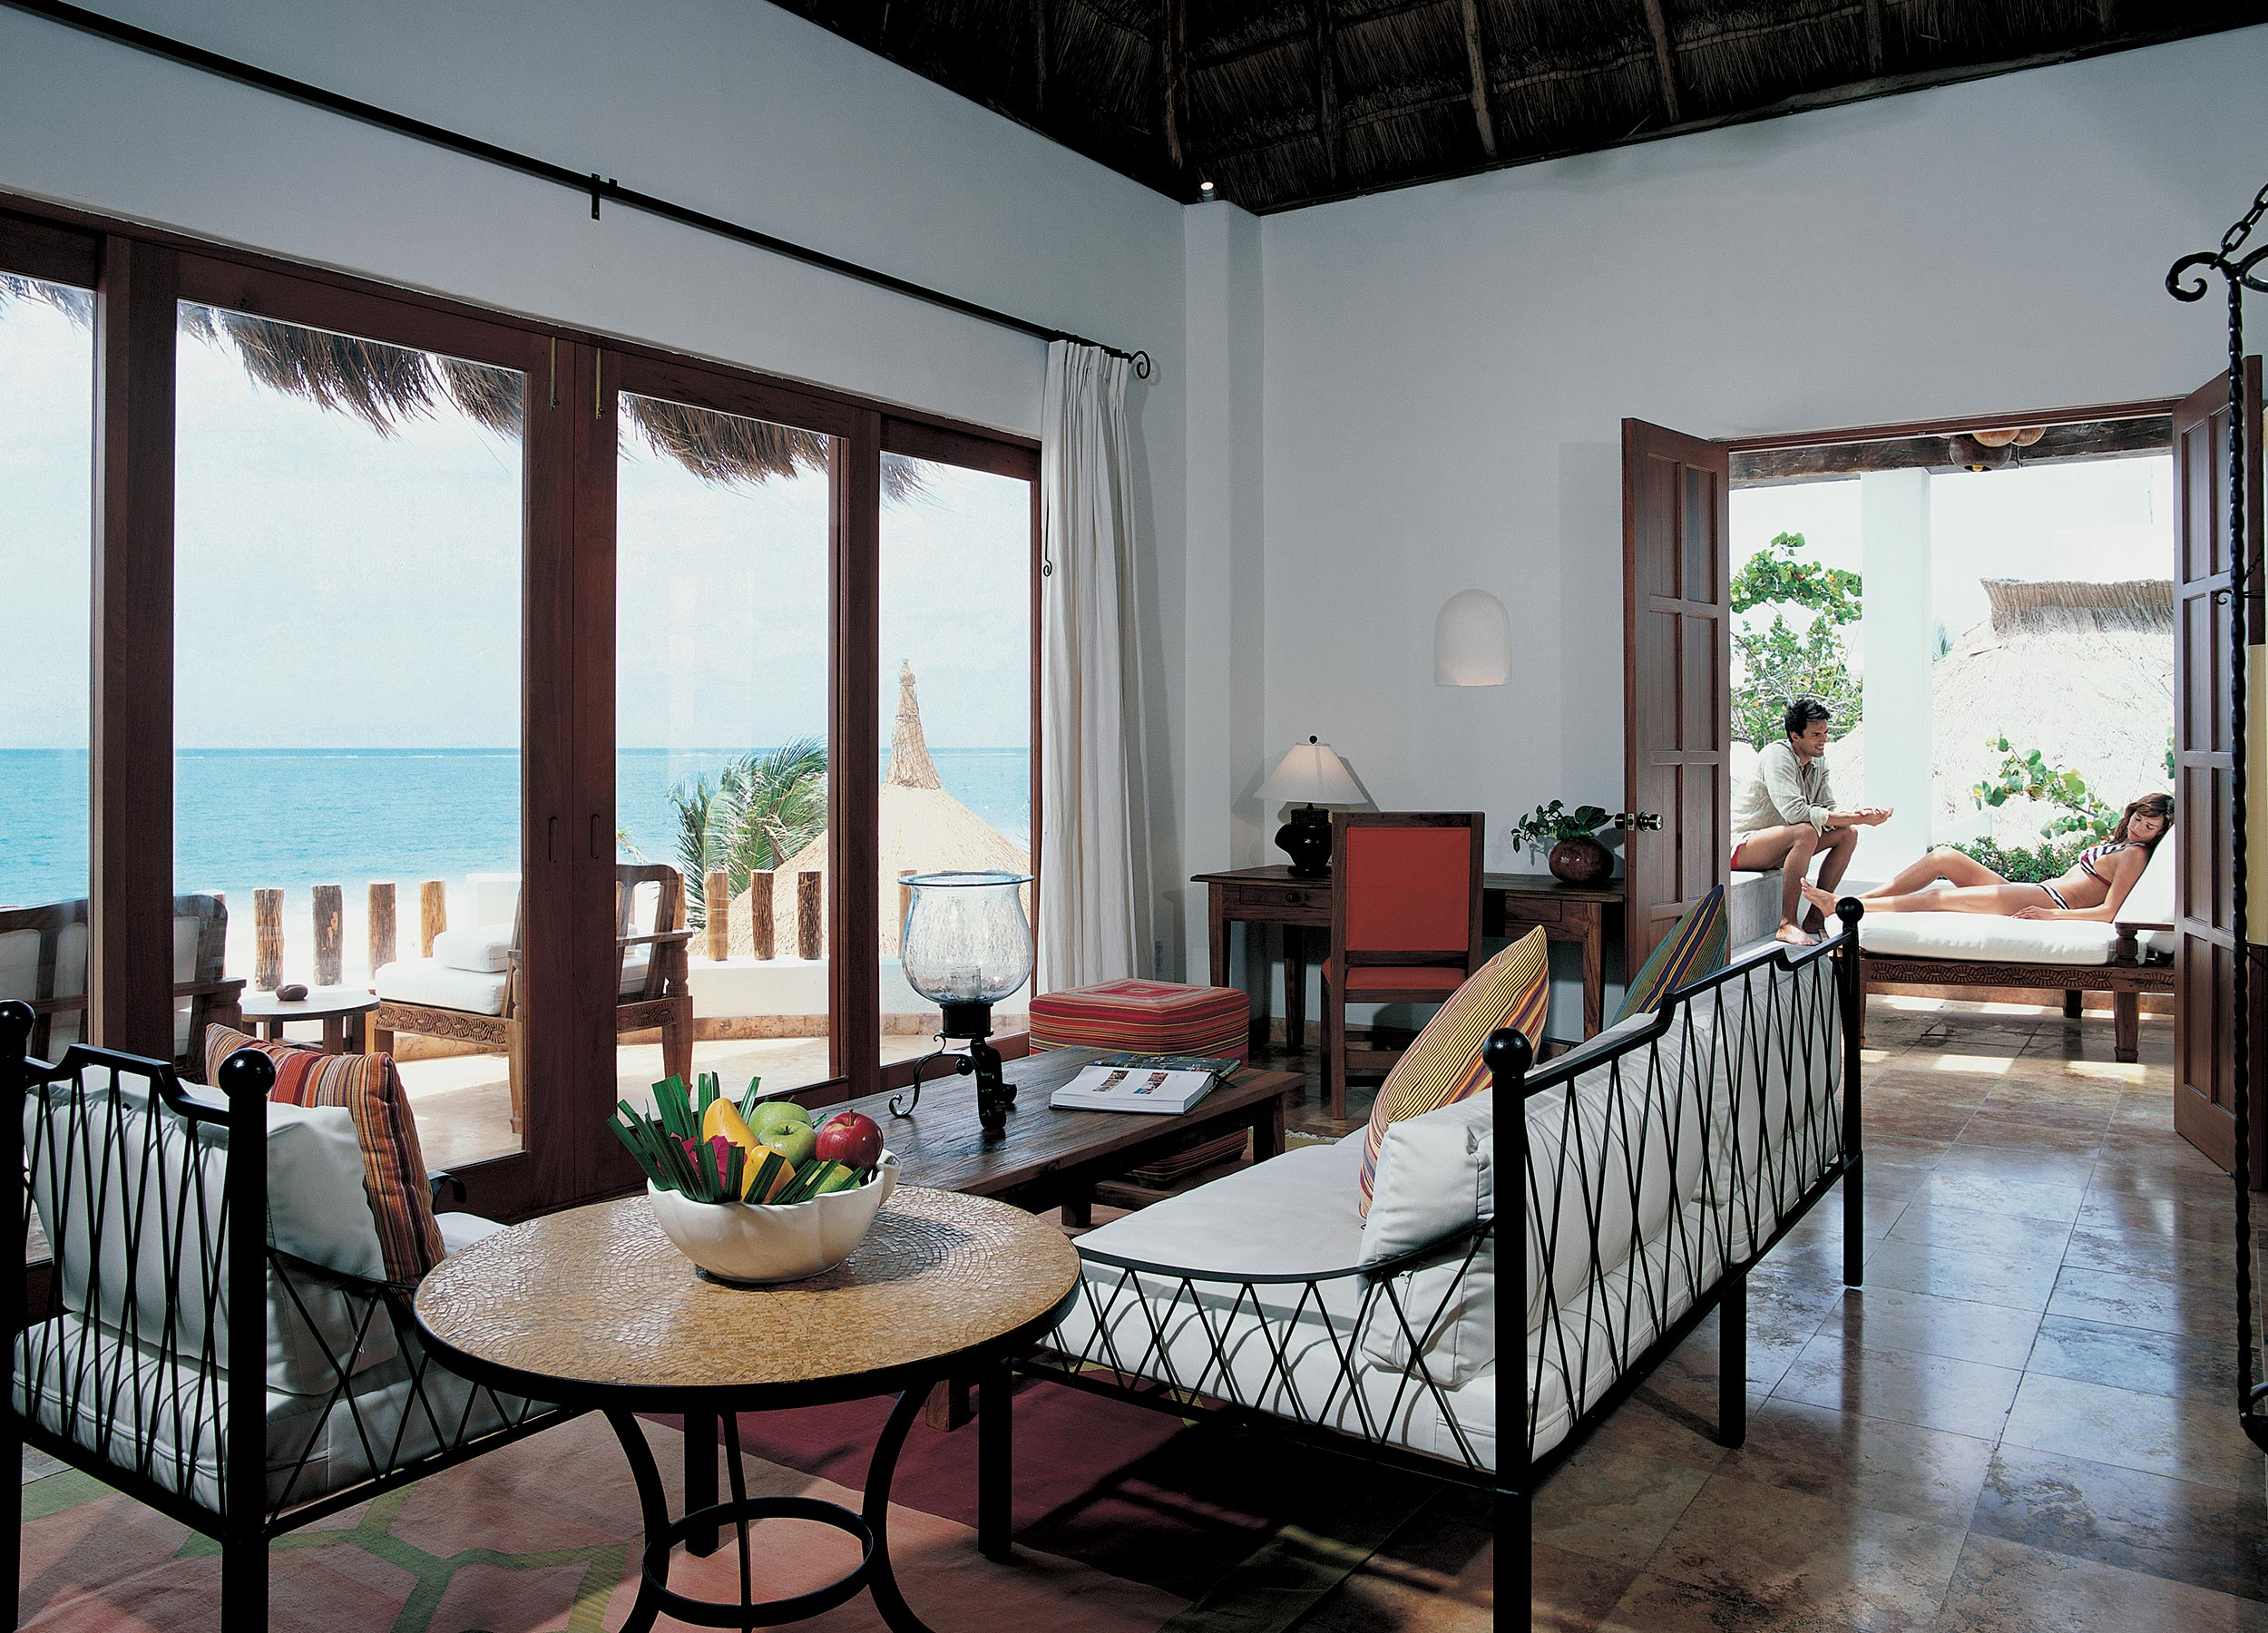 View through a living area out to the balcony and the sea at Belmond Maroma, Yucatan